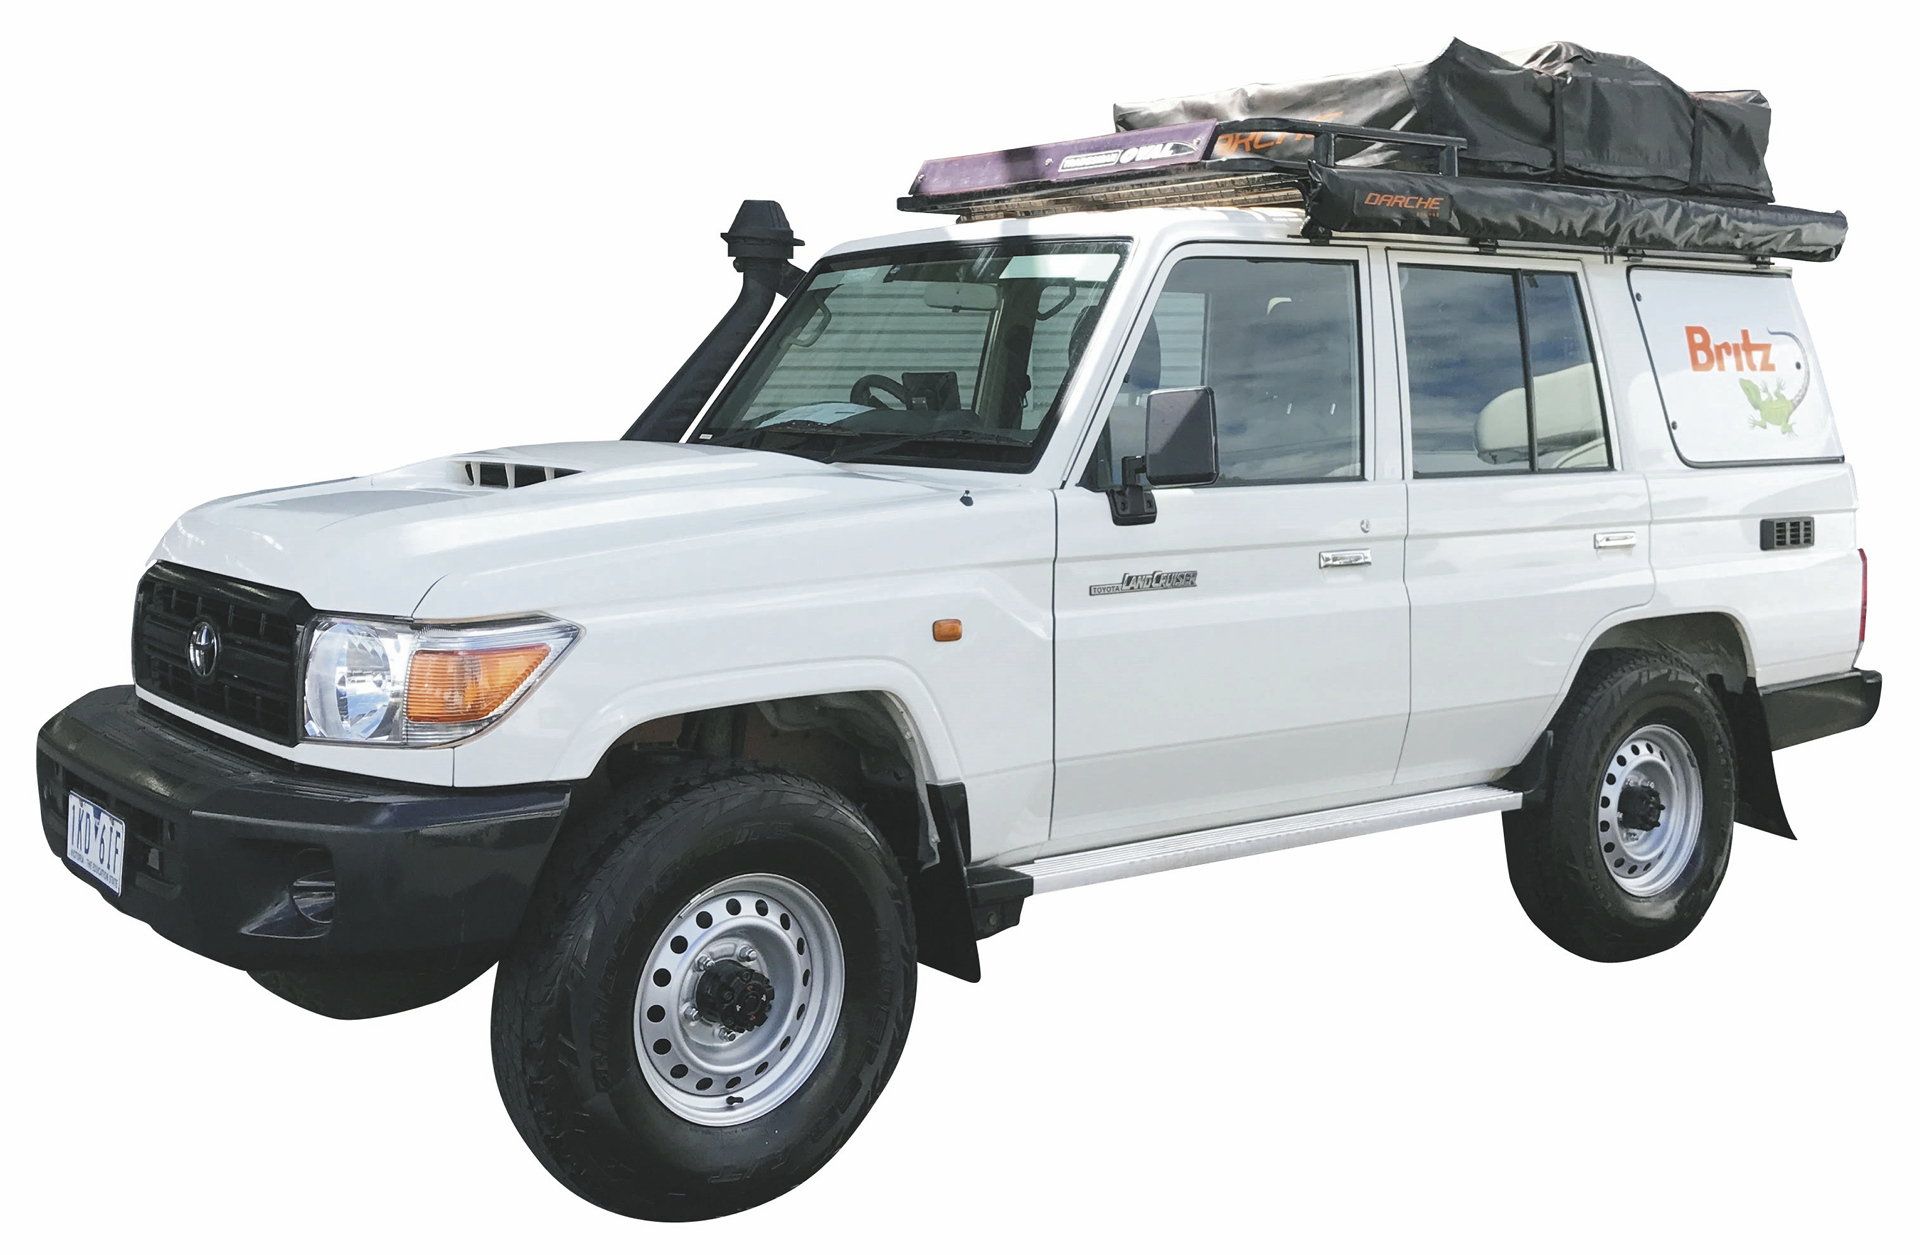 britz safari landcruiser 4wd wohnmobil mieten in australien. Black Bedroom Furniture Sets. Home Design Ideas